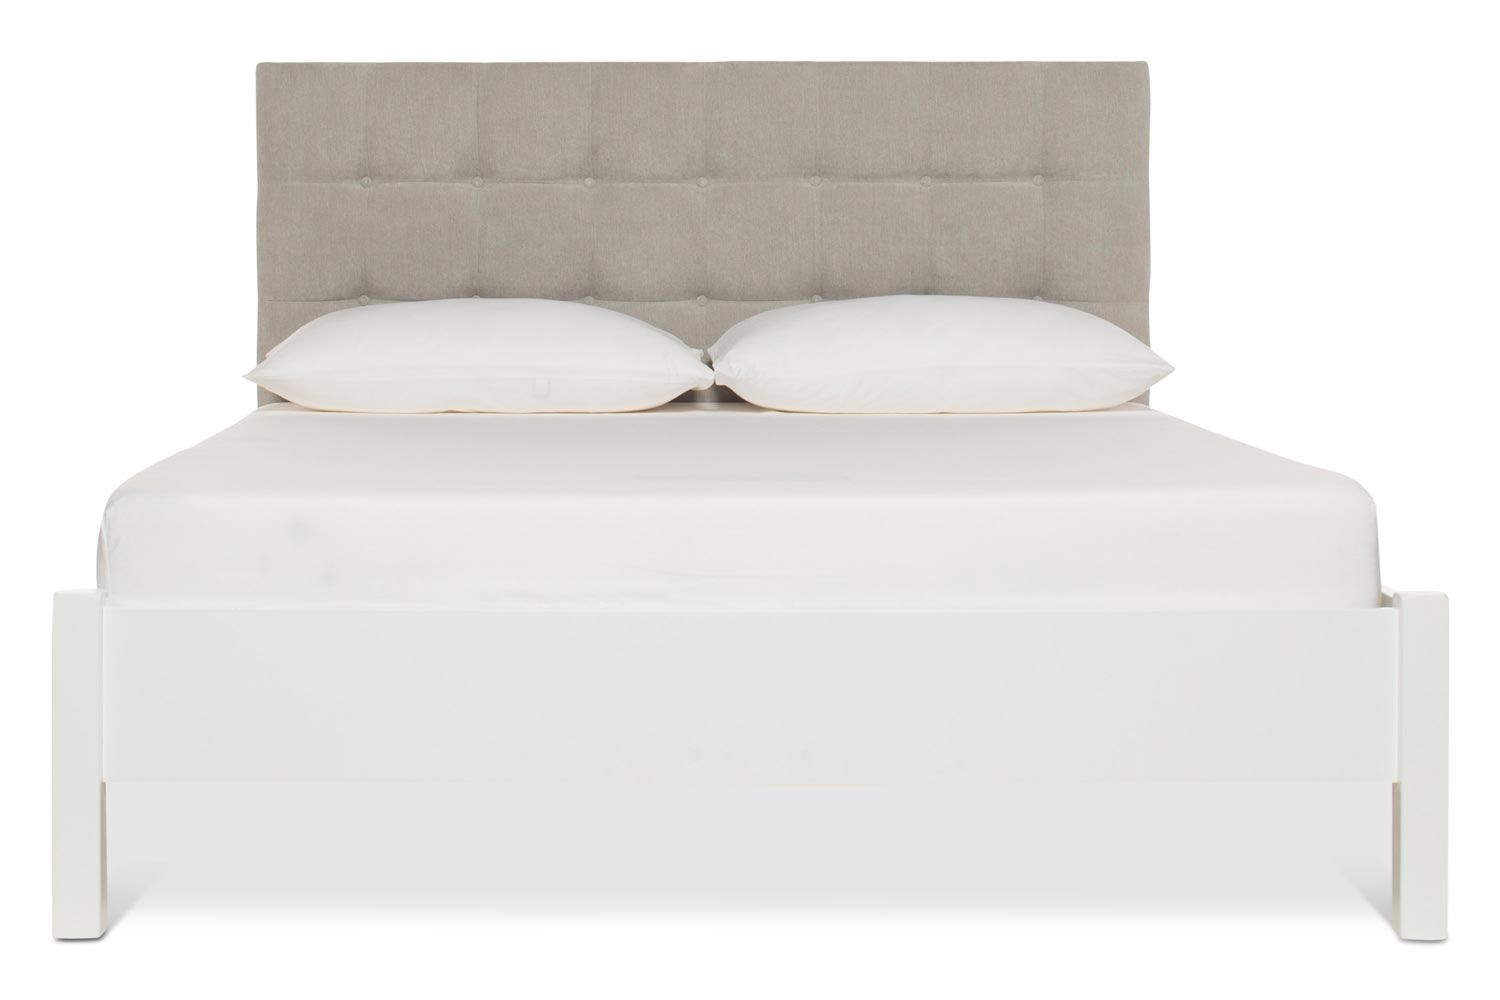 Emily Loft White Bed Frame | 4FT6 | Portman Headboard Silver